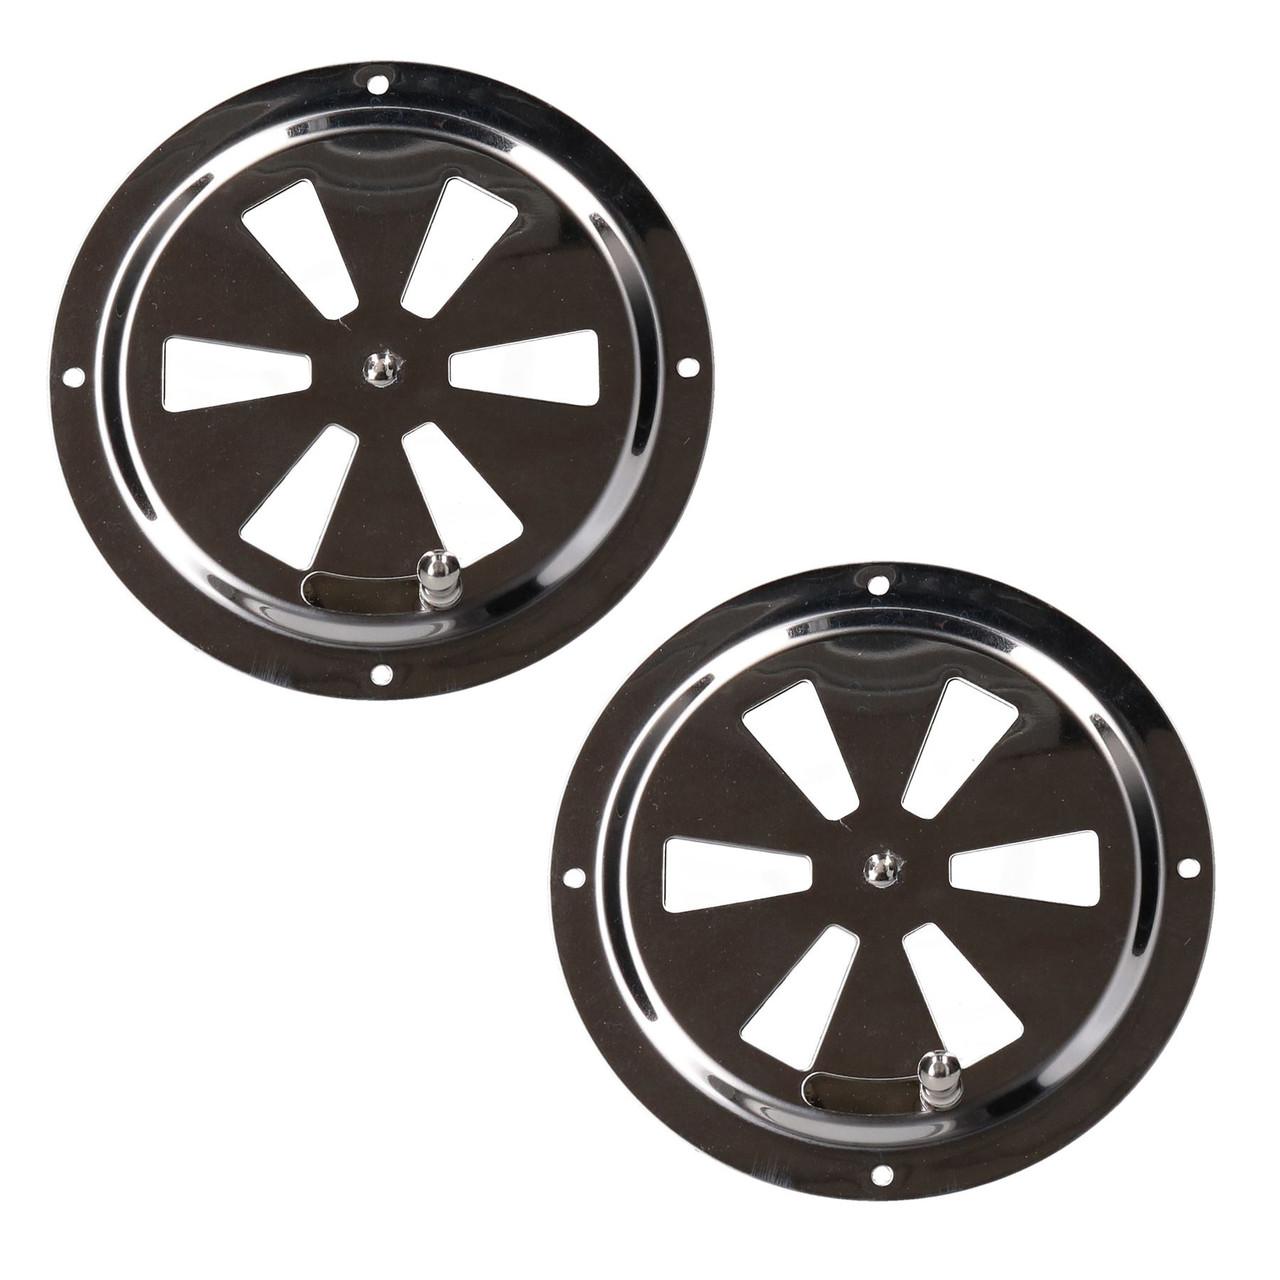 Air Vent Ventilator Grill Round Closeable Polished Stainless Steel Marine 2 Pack